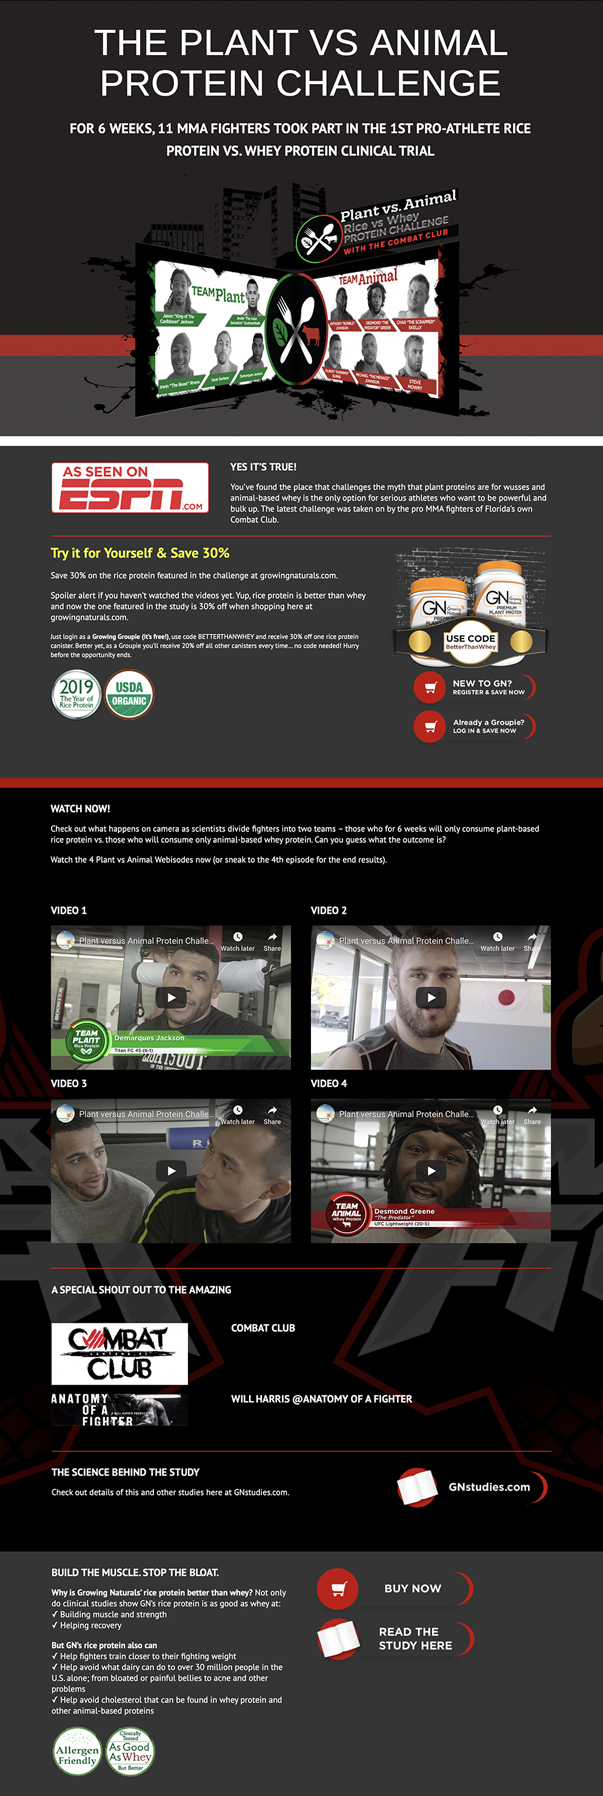 MMA Fighters video production